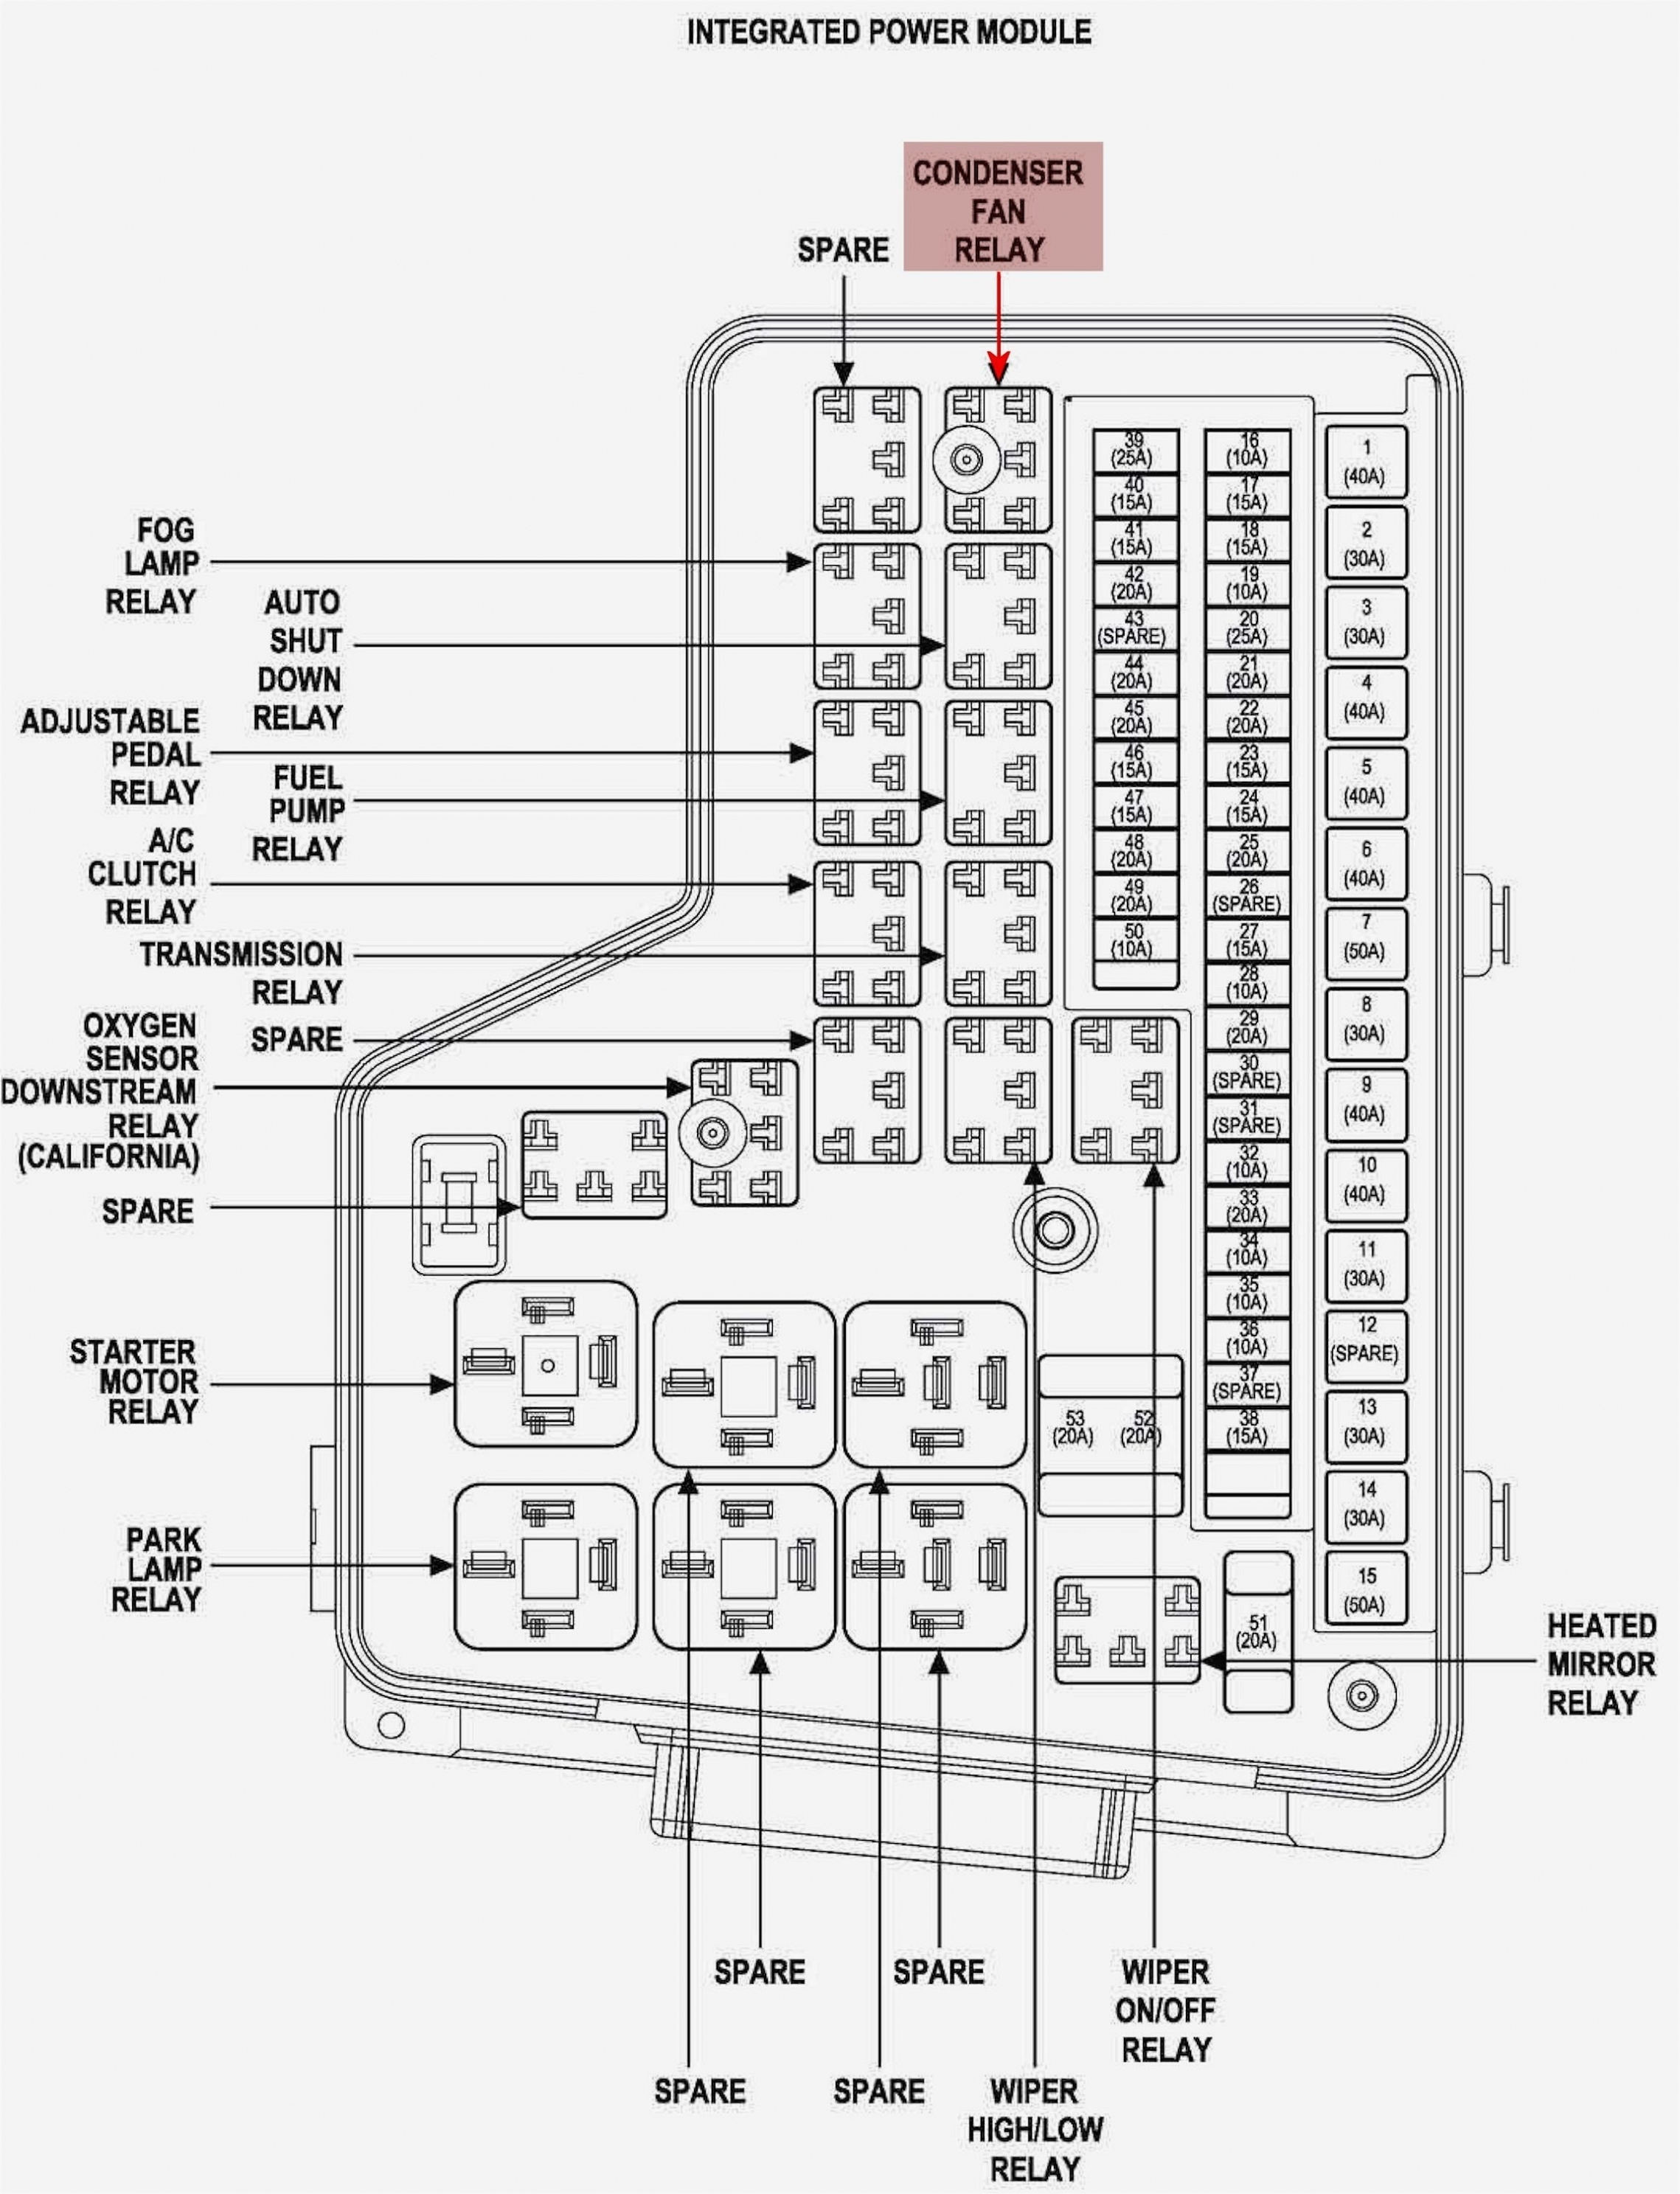 2002 Dodge Stratus Fuse Panel Diagram - engineer wiring diagram on 2004 dodge ram 3500 wiring diagram, 1990 dodge spirit wiring diagram, 2006 dodge durango wiring diagram, 2006 dodge viper wiring diagram, 2009 dodge grand caravan wiring diagram, 2001 dodge ram 2500 wiring diagram, 2010 dodge ram 2500 wiring diagram, 1998 dodge intrepid wiring diagram, 1996 dodge grand caravan wiring diagram, 2001 dodge ram van 3500 wiring diagram, 2006 dodge ram 1500 wiring diagram, 2006 dodge ram 2500 wiring diagram, dodge stratus strut diagram, 2004 dodge ram 2500 wiring diagram, 2007 dodge magnum wiring diagram, 2001 dodge stratus fuse box diagram, 1998 dodge ram 2500 wiring diagram, 2007 dodge ram 2500 wiring diagram, 1999 dodge ram 2500 wiring diagram, 1996 dodge ram 2500 wiring diagram,